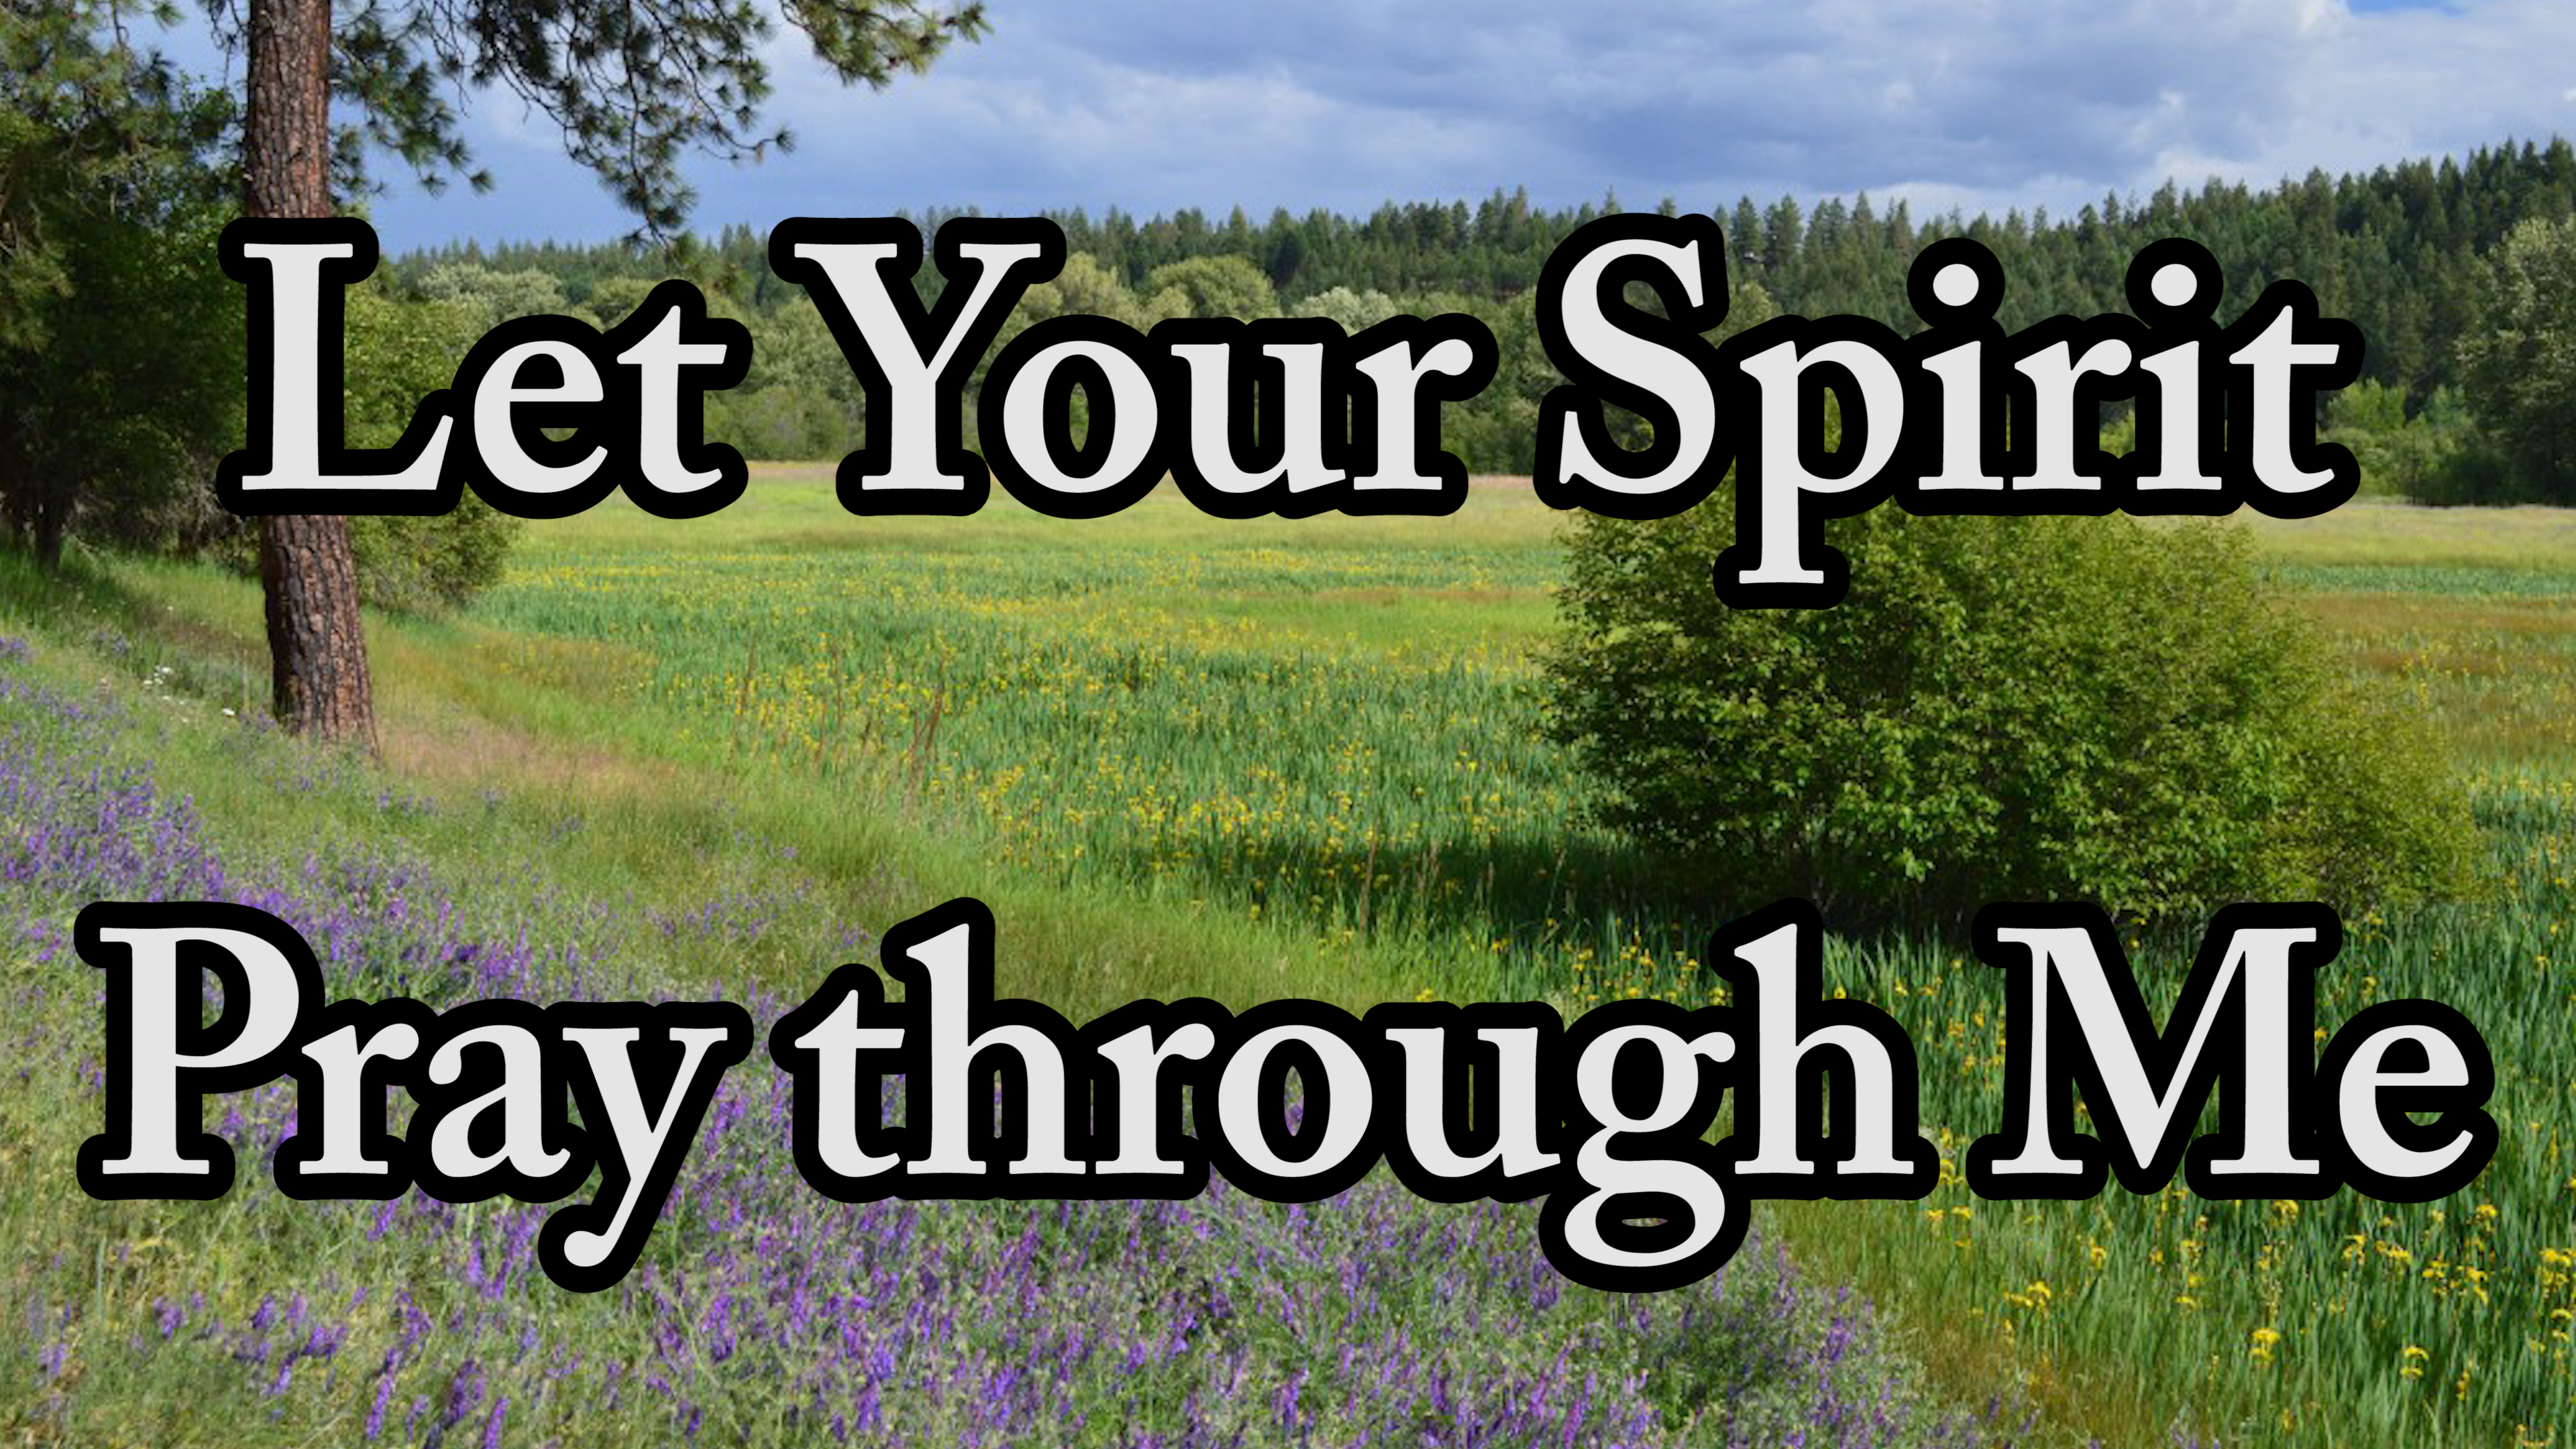 Let Your Spirit Pray through Me